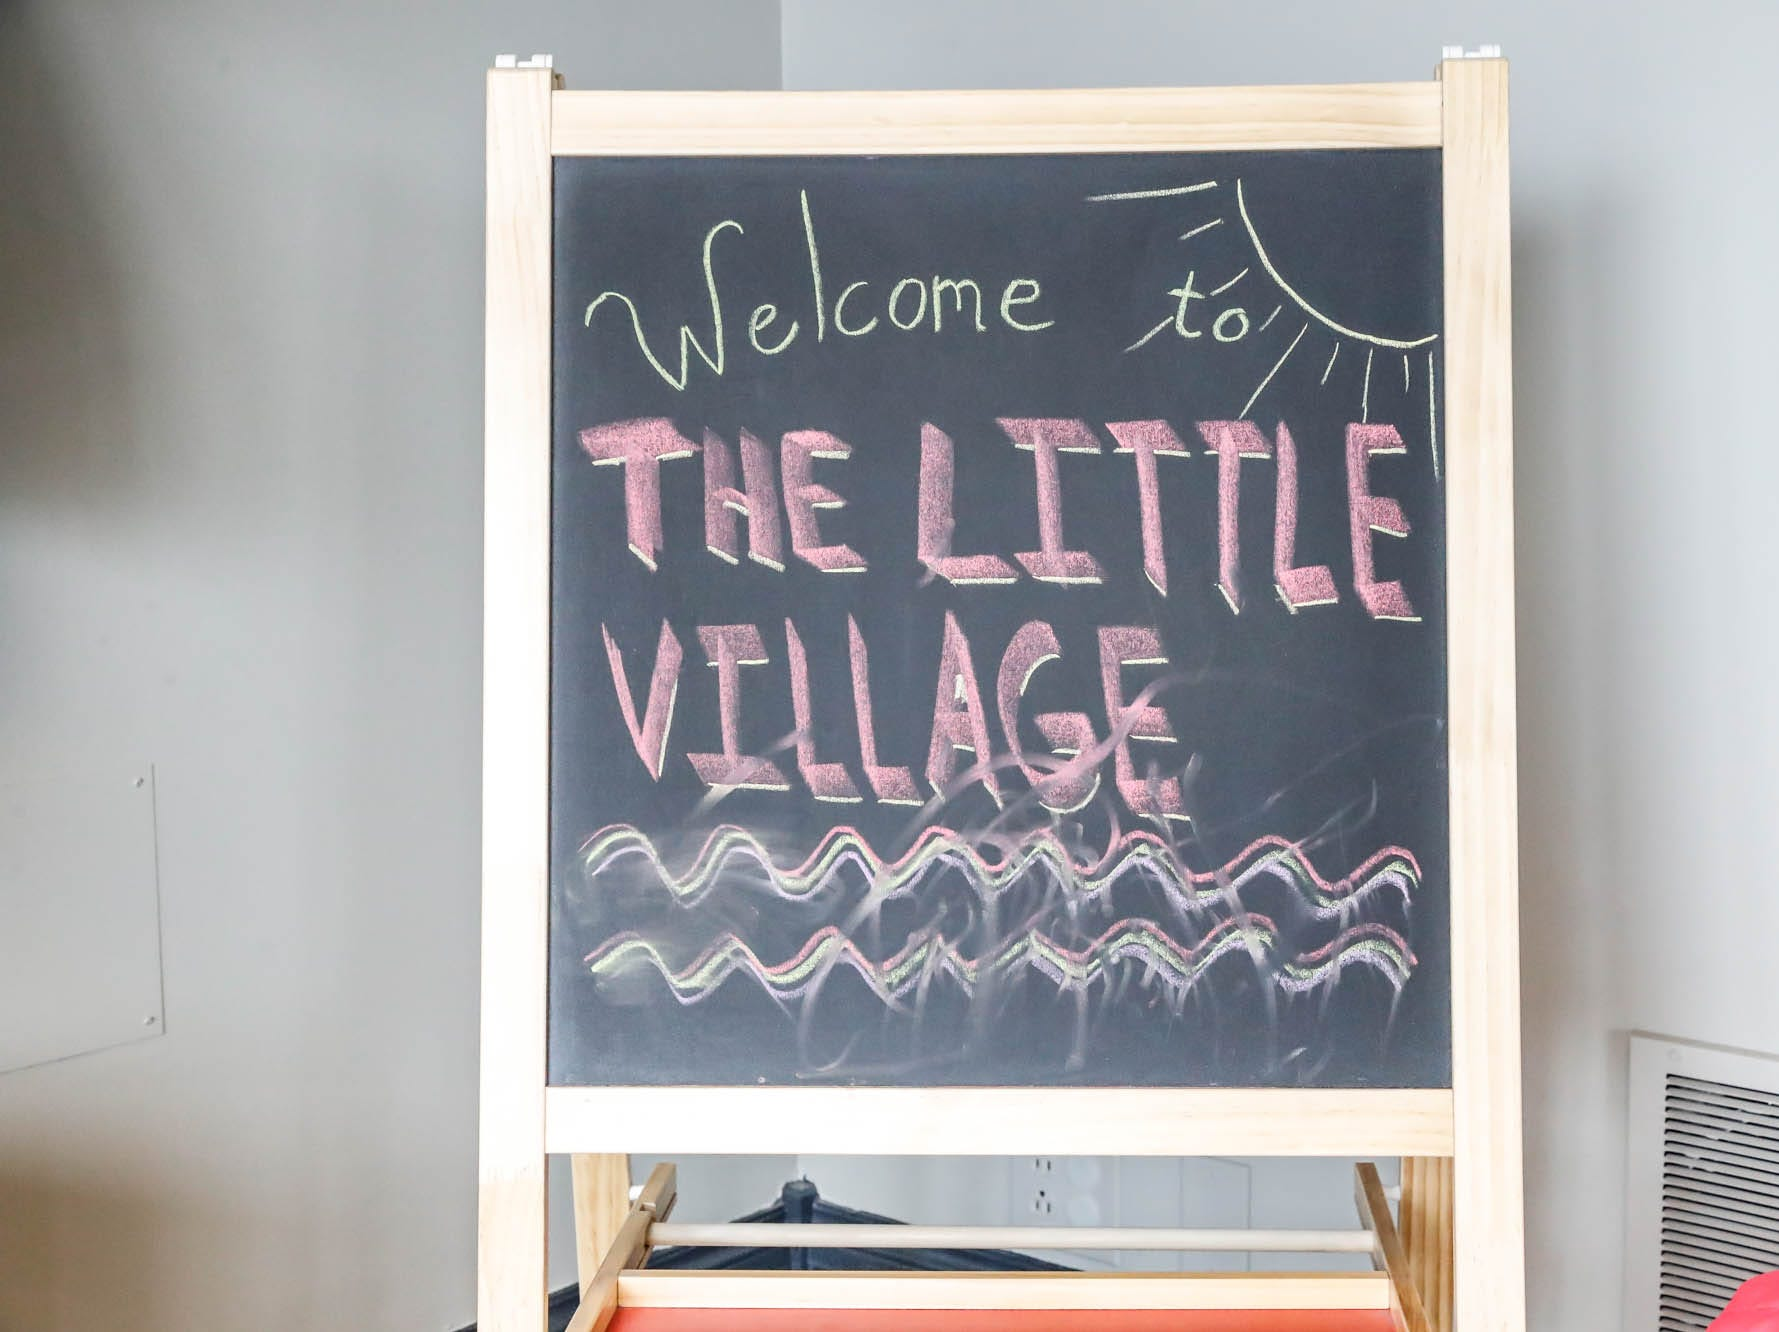 A sign welcomes guests to The Little Village Playroom, 9850 N. Michigan Rd, Carmel, Ind., on Tuesday, Feb. 5, 2019.